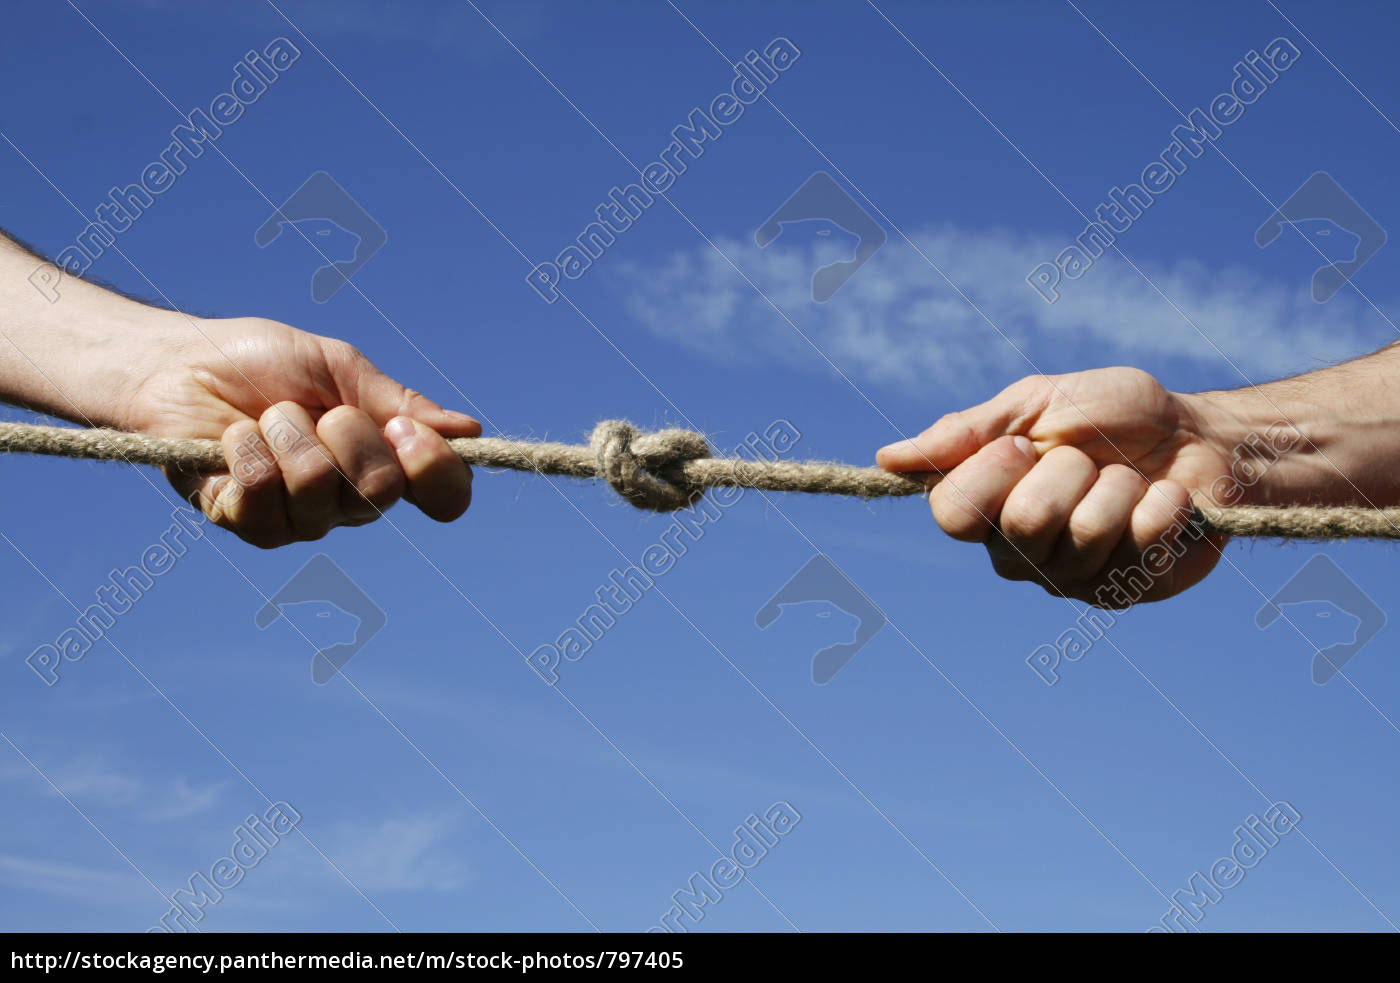 rope, with, knot - 797405